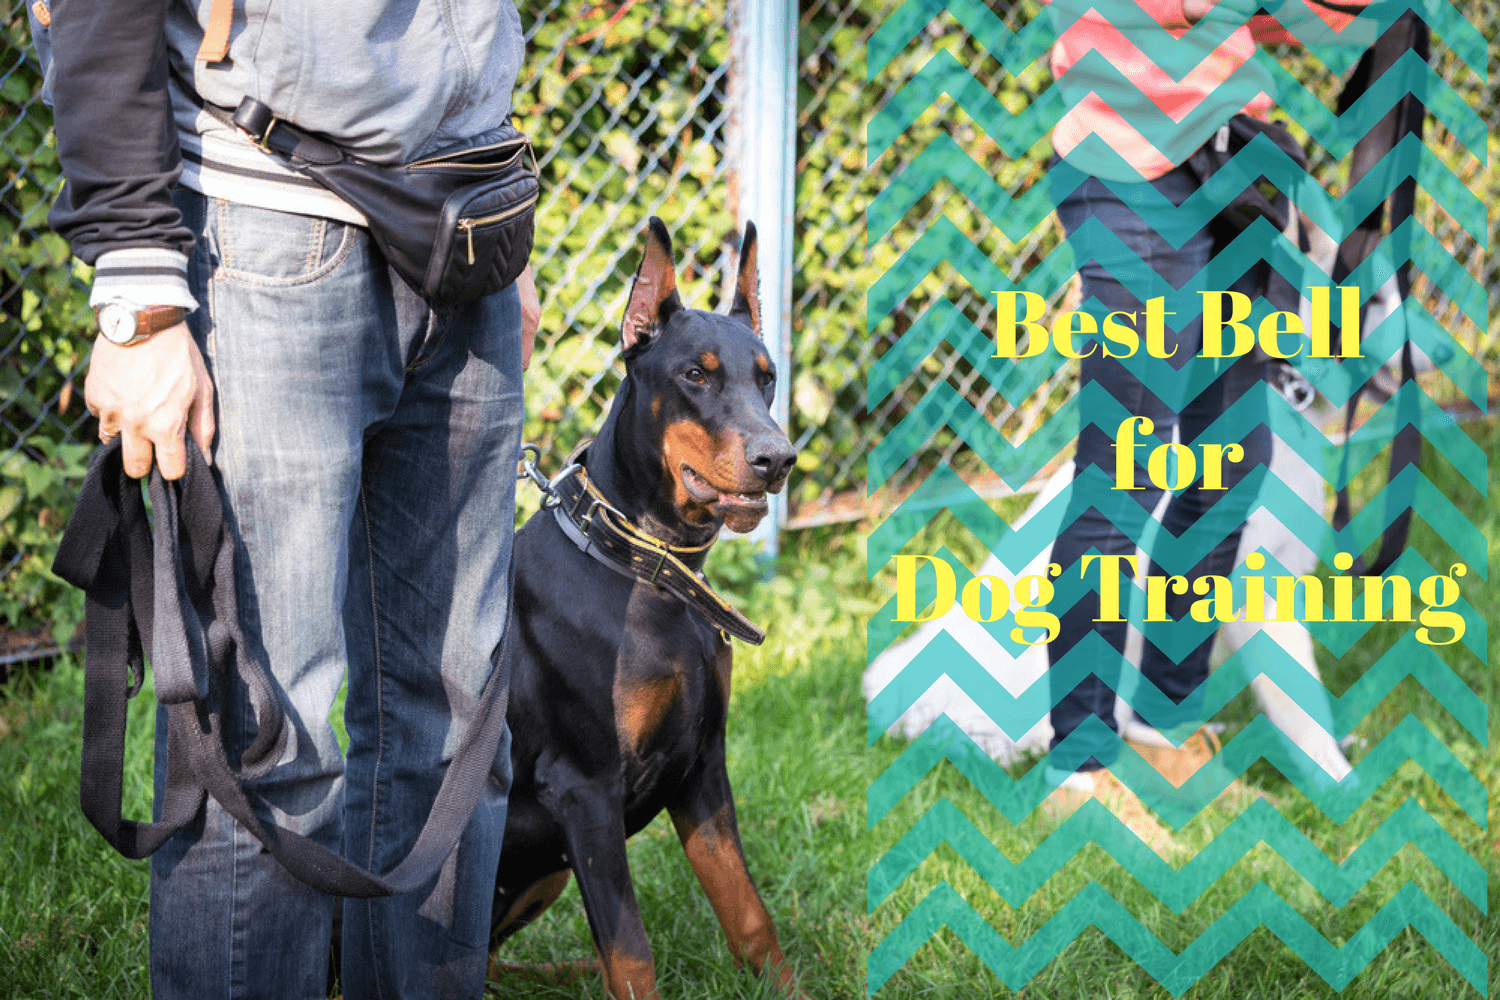 Guide to the Best Bell for Dog Training in 2019